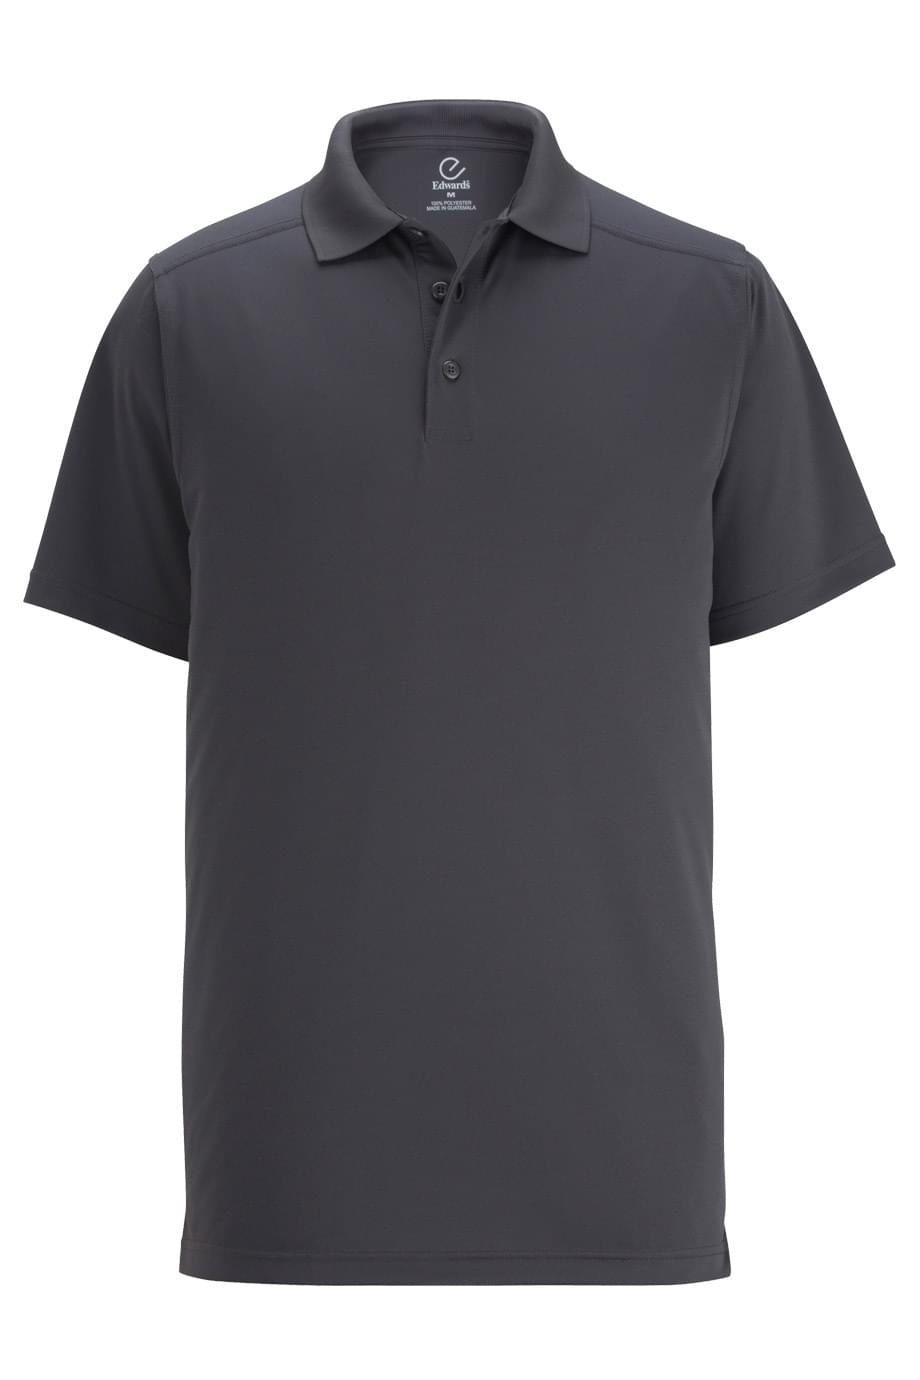 ULTIMATE SNAG-PROOF POLO